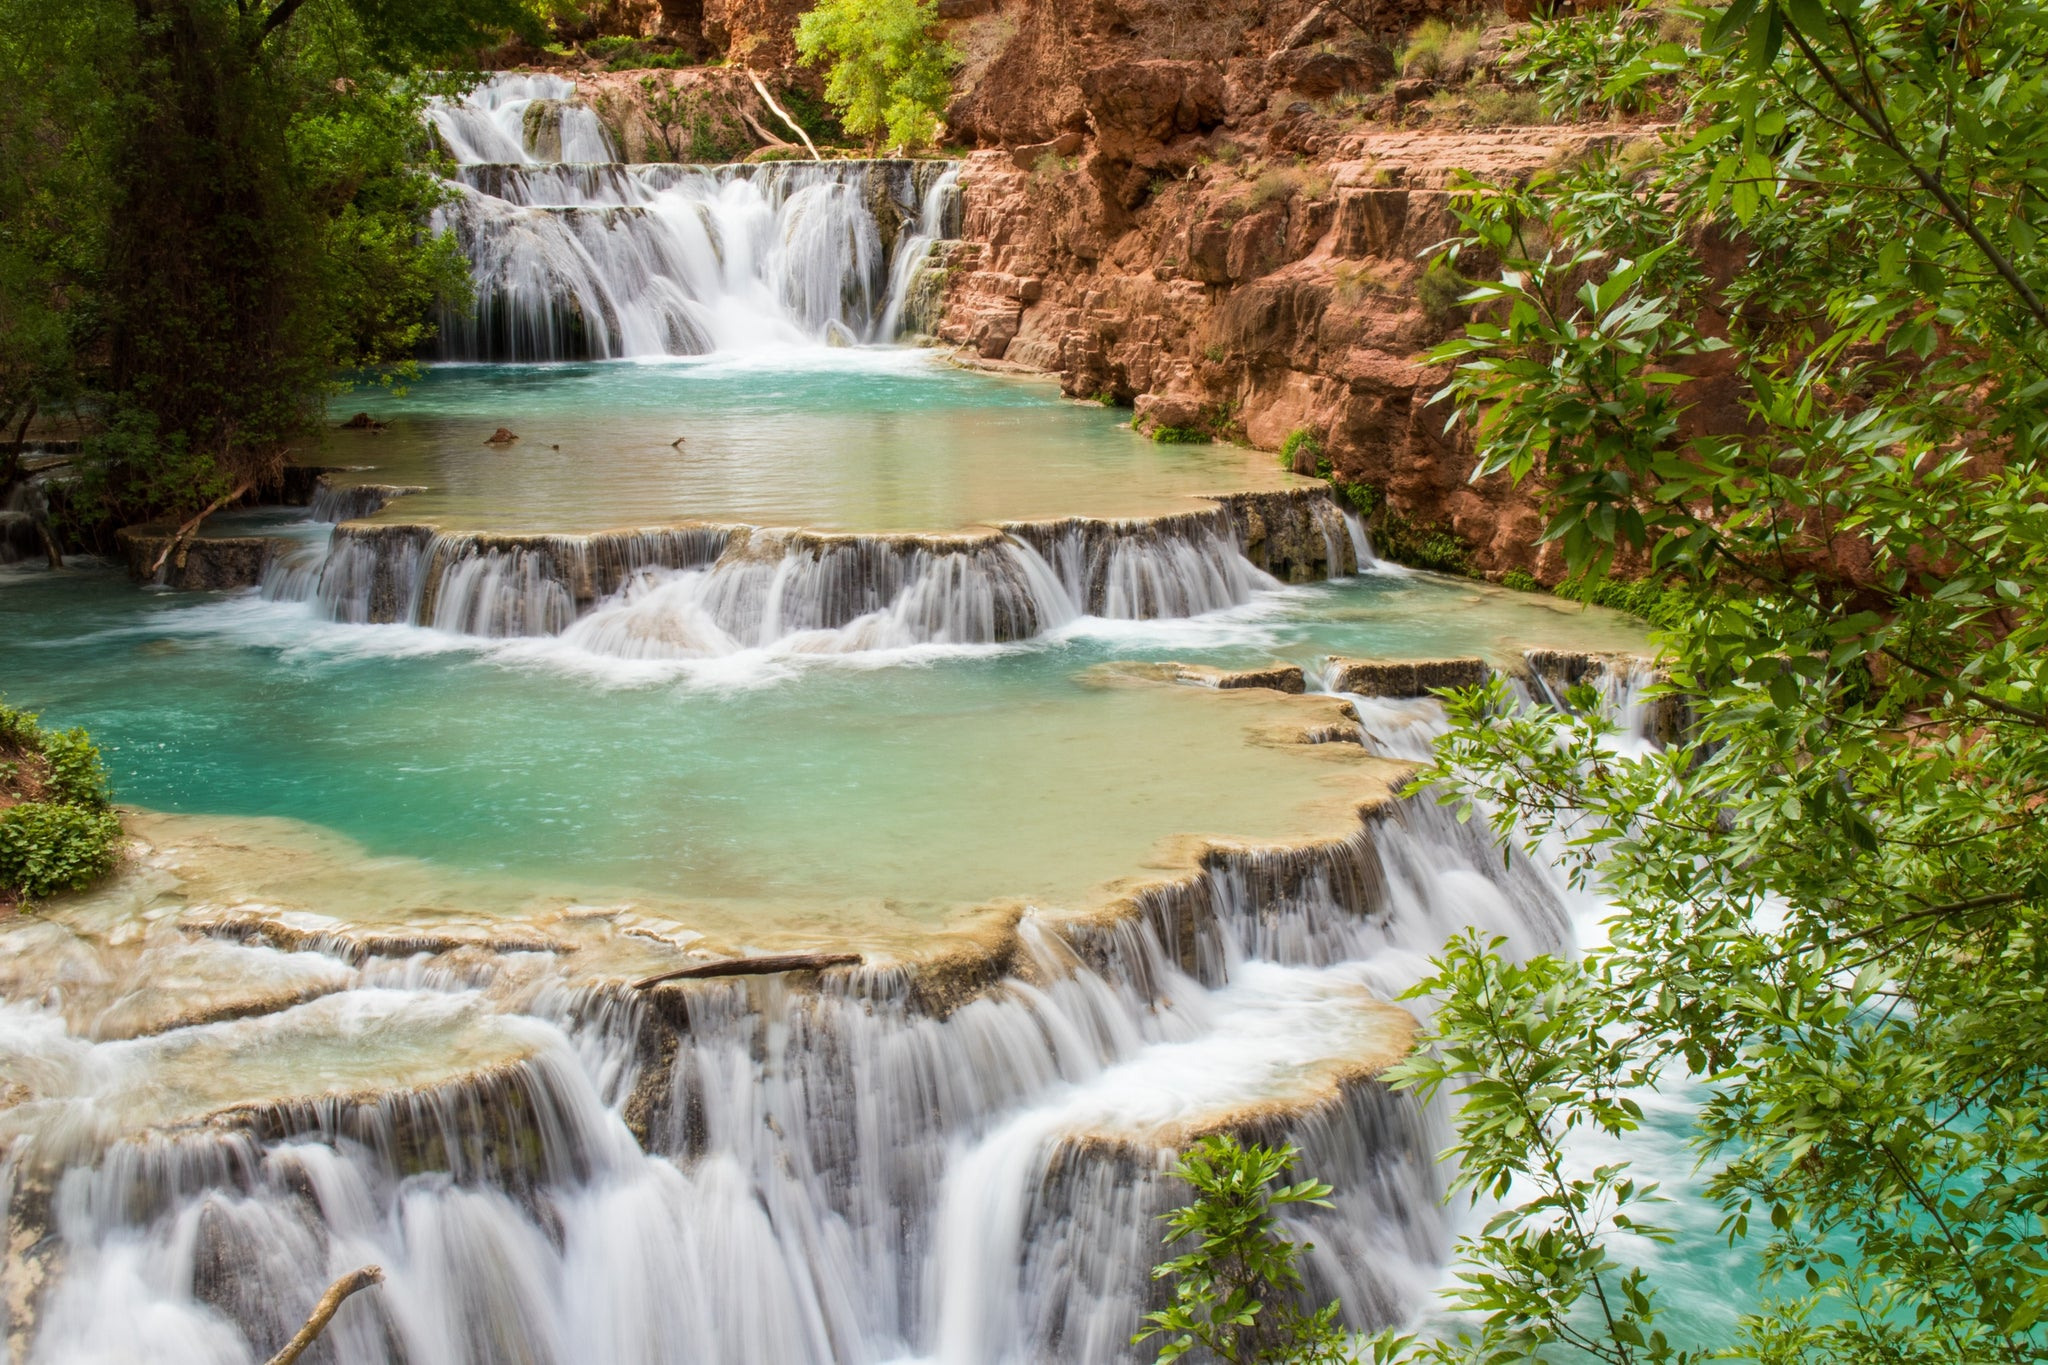 Using a Camera Strap While Hiking Havasupai